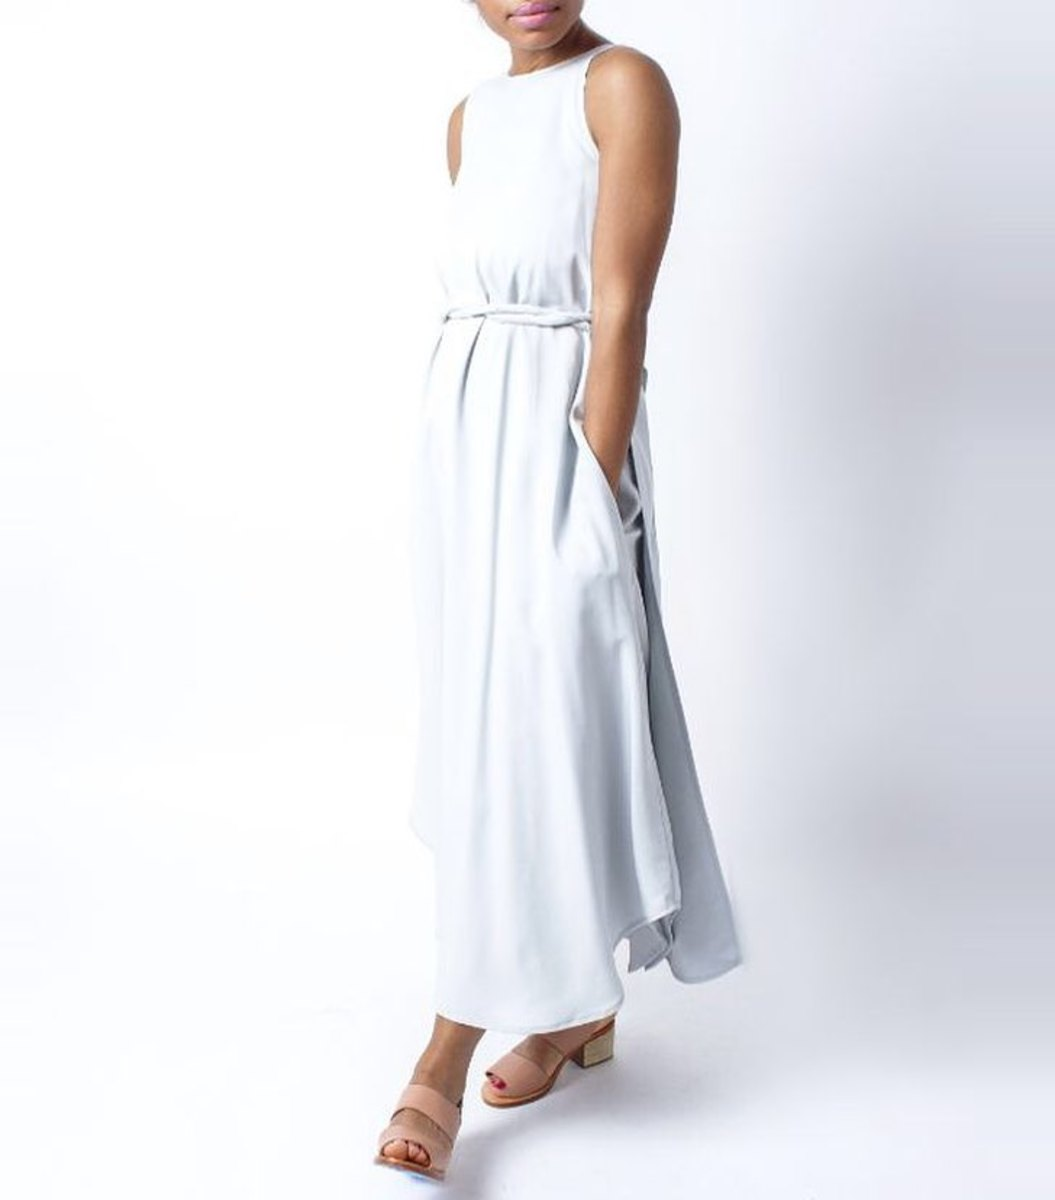 Hackwith Design House wrap dress, $425, available at Stature.